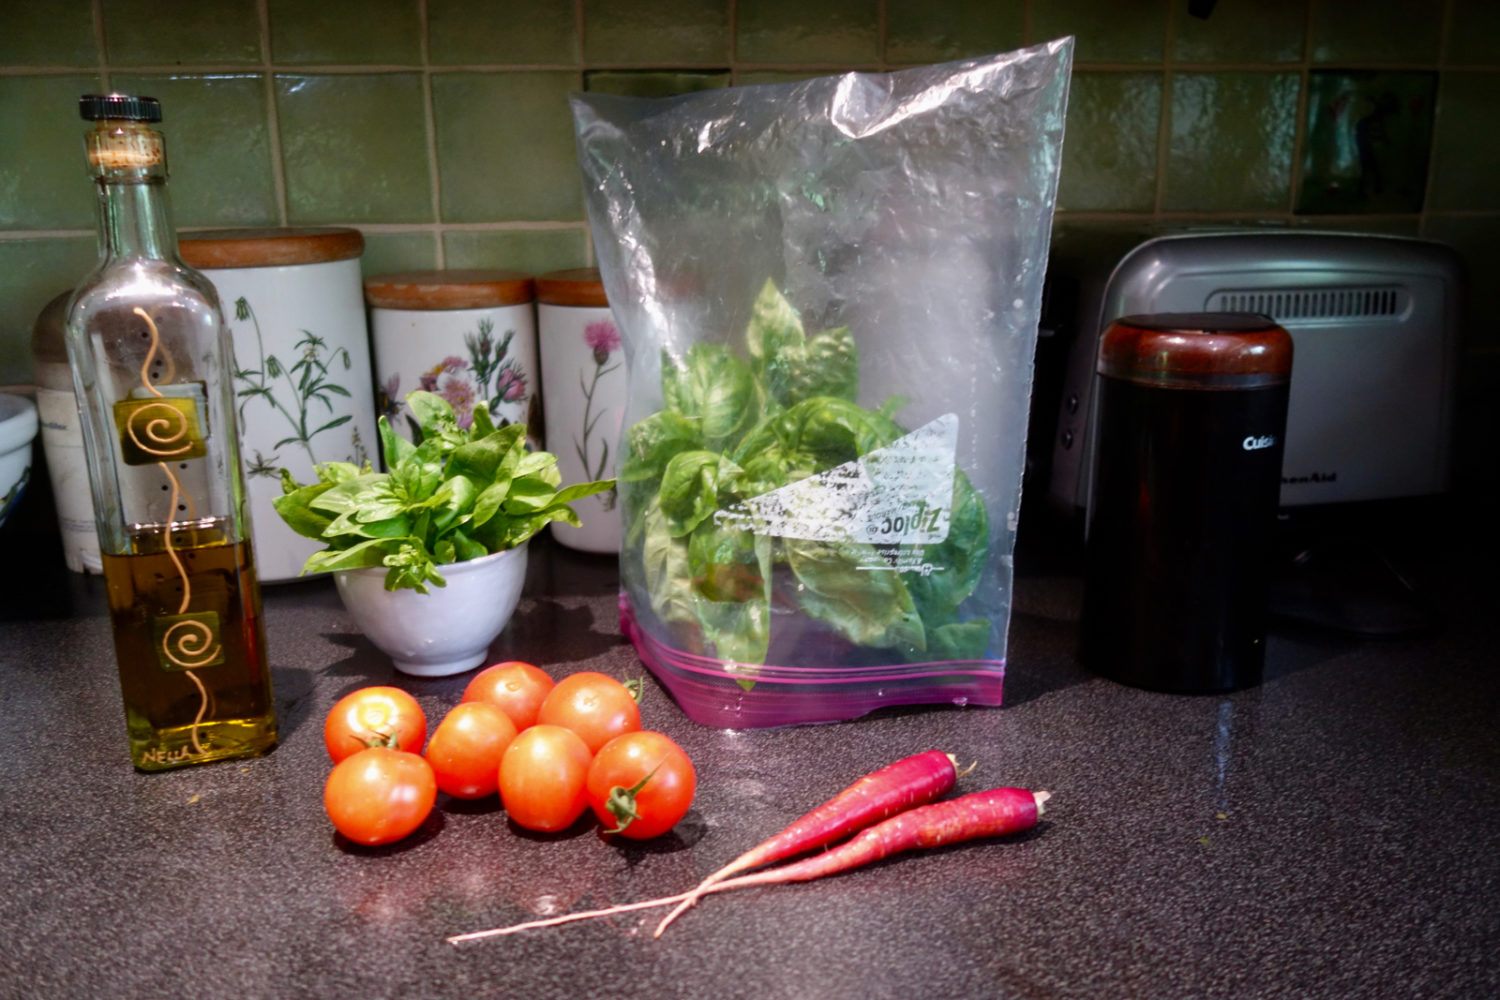 Olive oil, basil, basil in a plastic bag tent and carrots from the garden